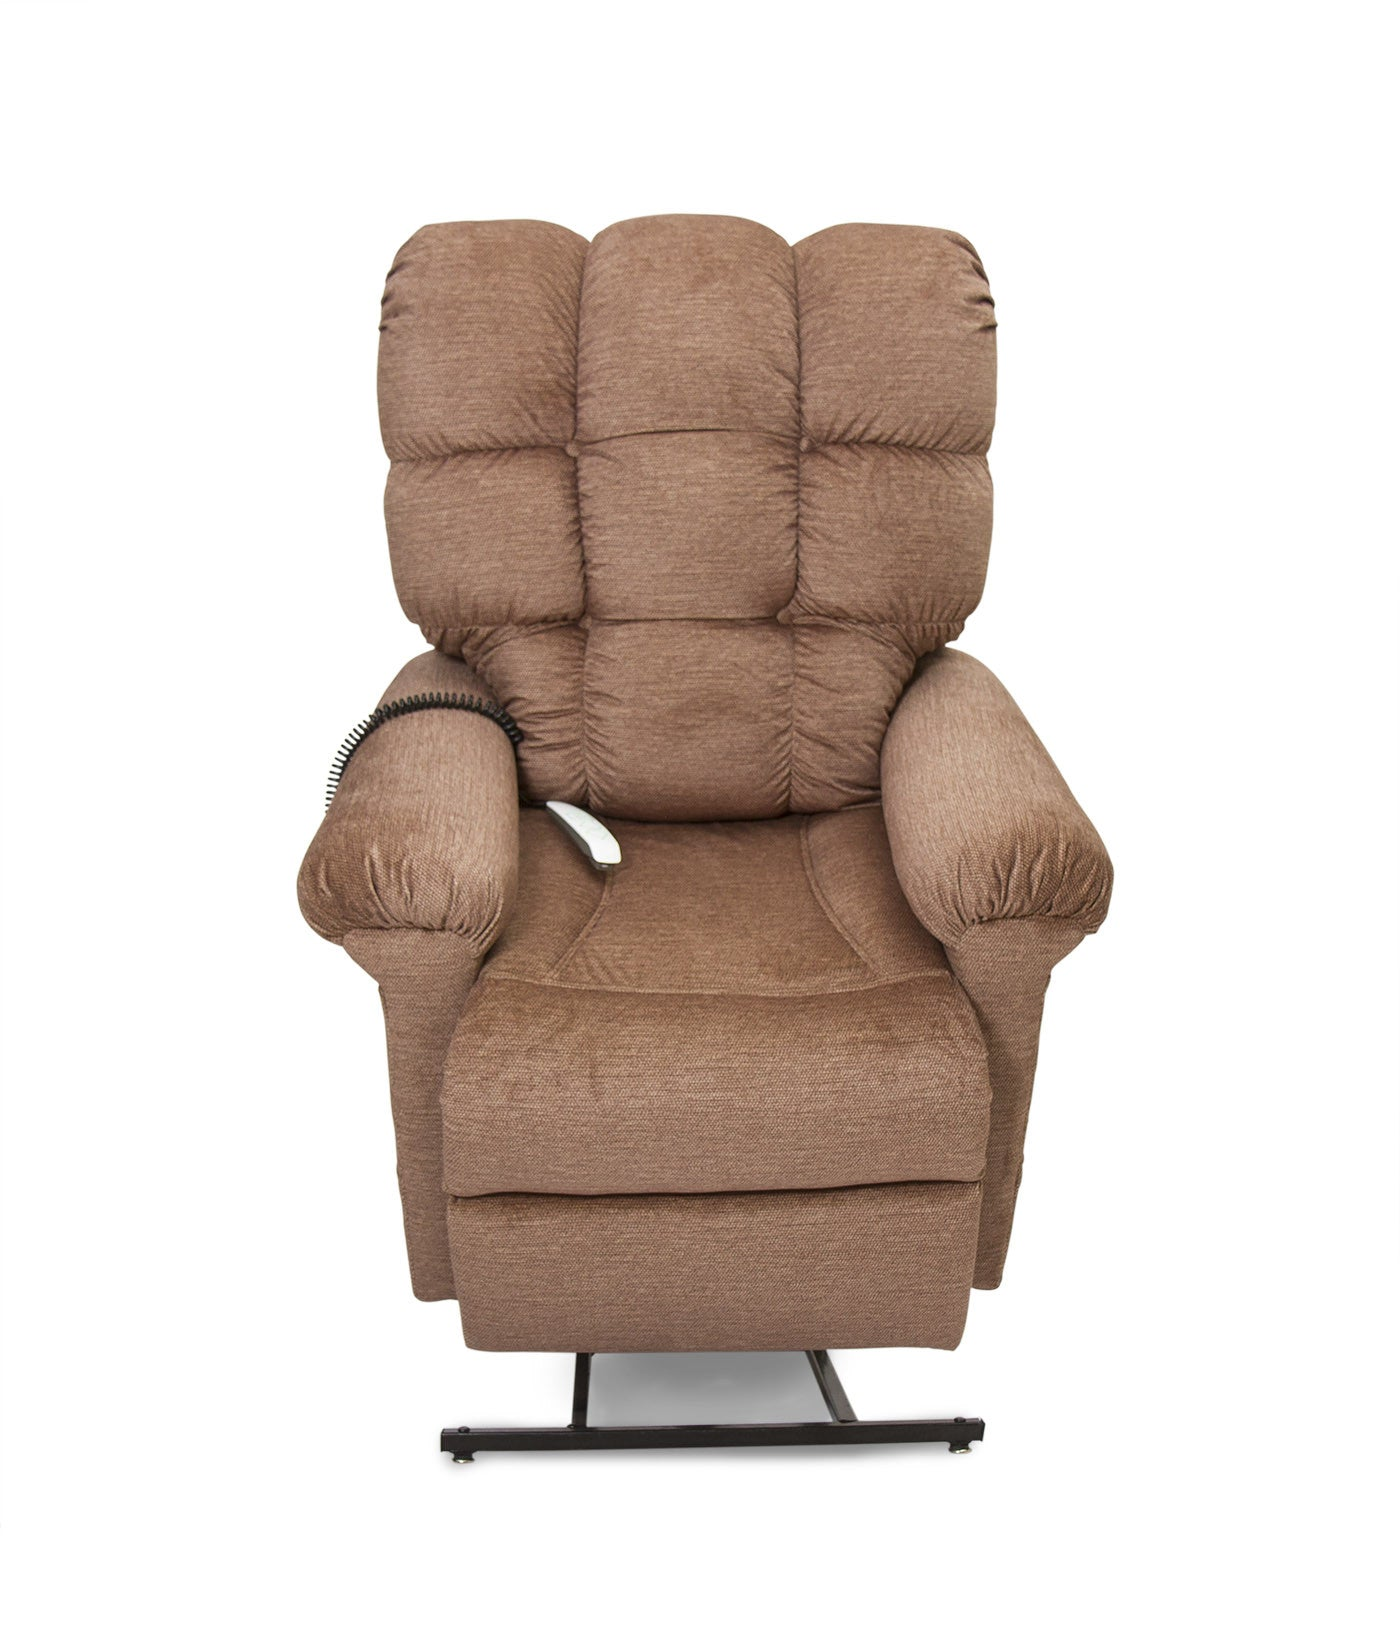 Pride Lift Chair Recliner LC580 Oasis Infinity - Multiple Fabrics  sc 1 st  Safe Home Pro & Pride Lift Chair Recliner LC580 Oasis Infinity - Multiple Fabrics ... islam-shia.org